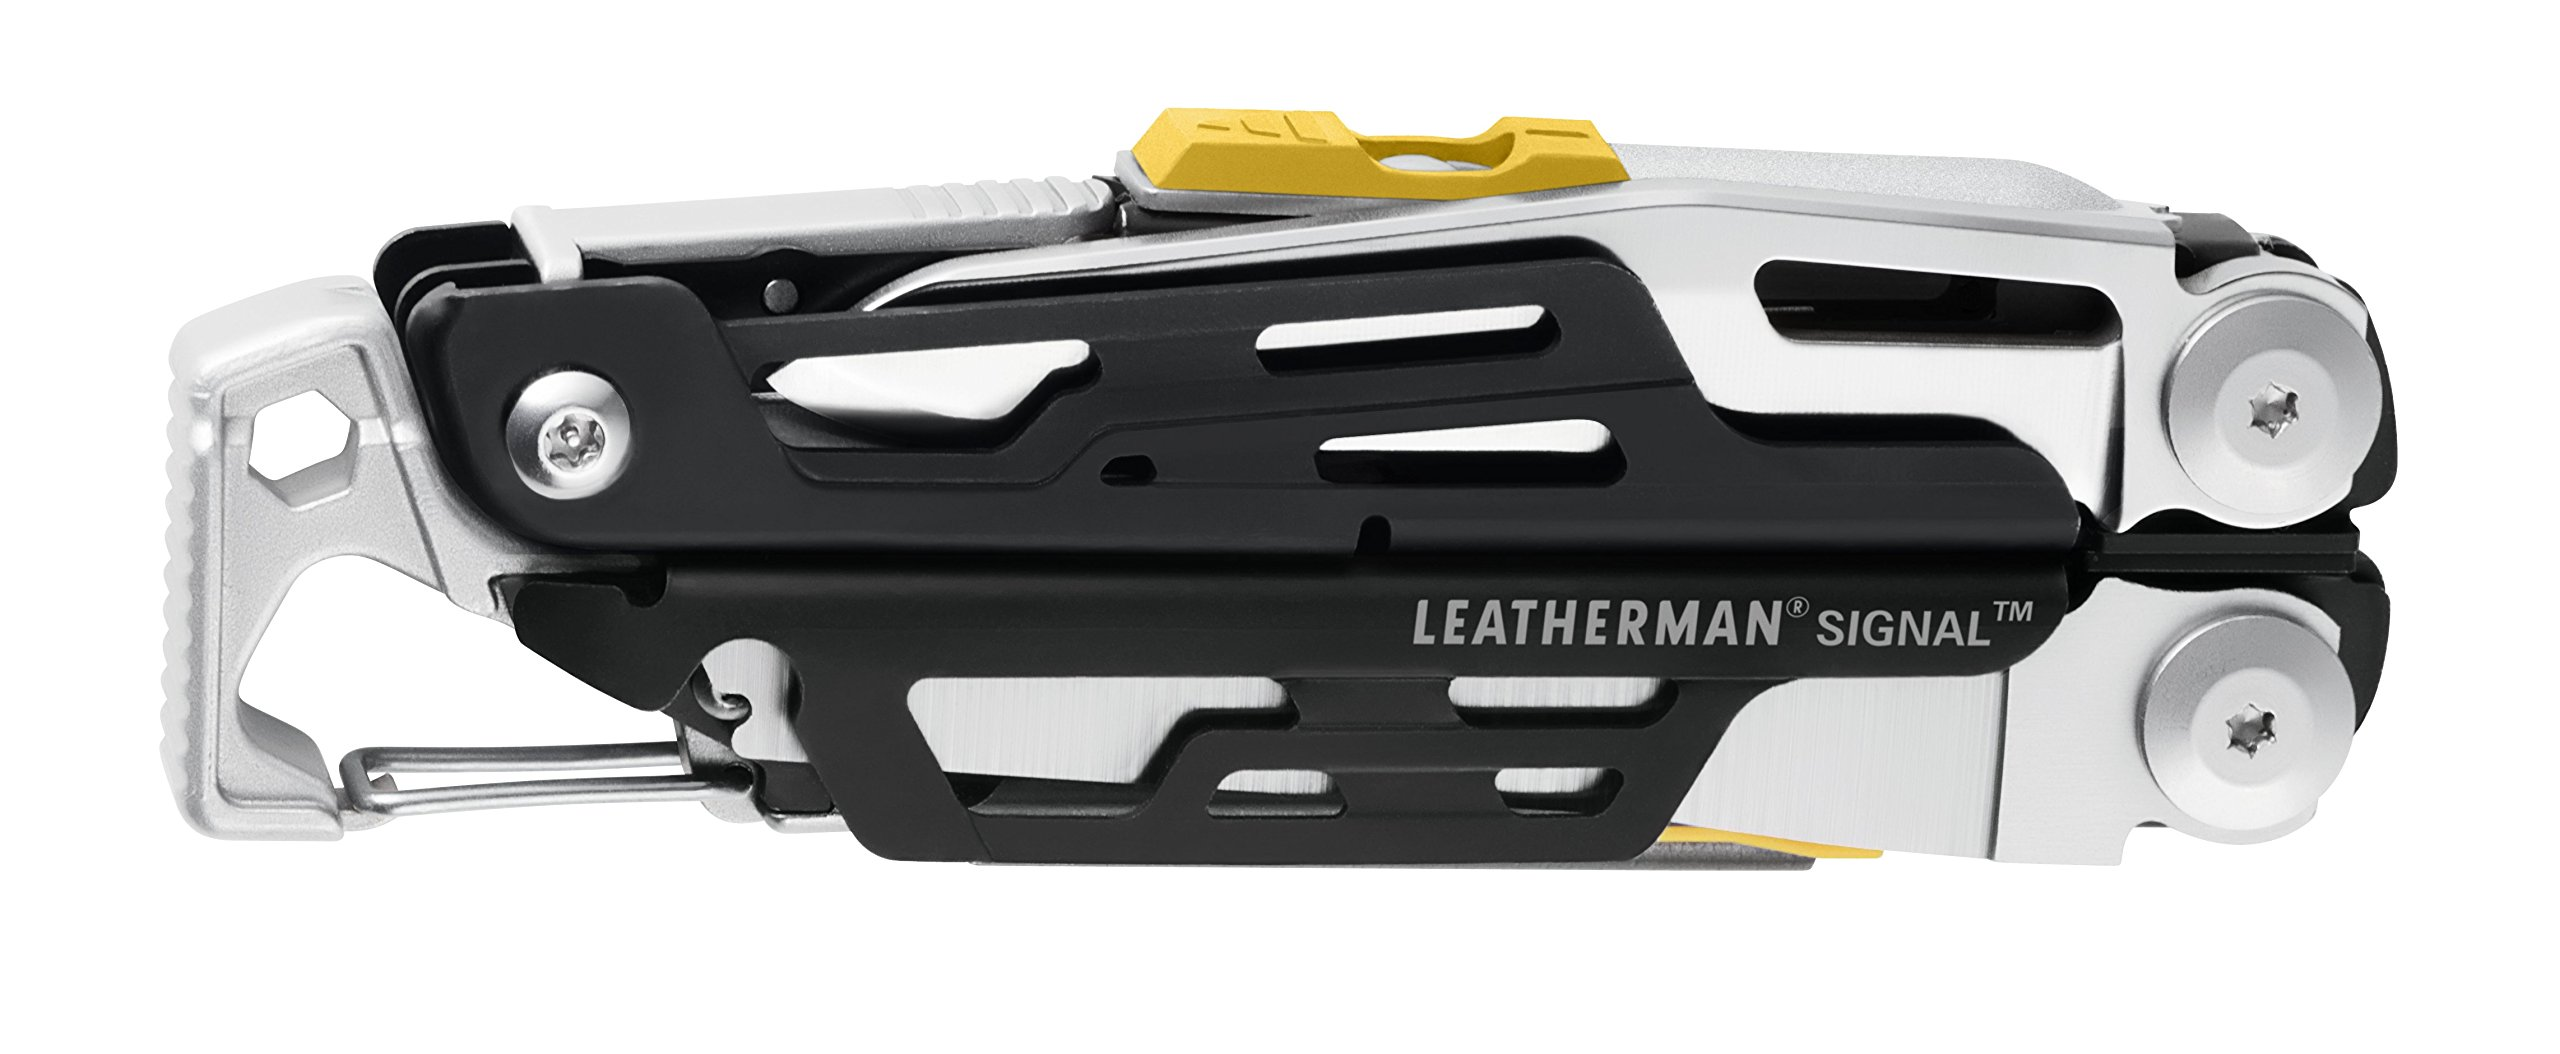 LEATHERMAN - Signal Camping Multitool with Fire Starter, Hammer, and Emergency Whistle, Stainless Steel by LEATHERMAN (Image #6)